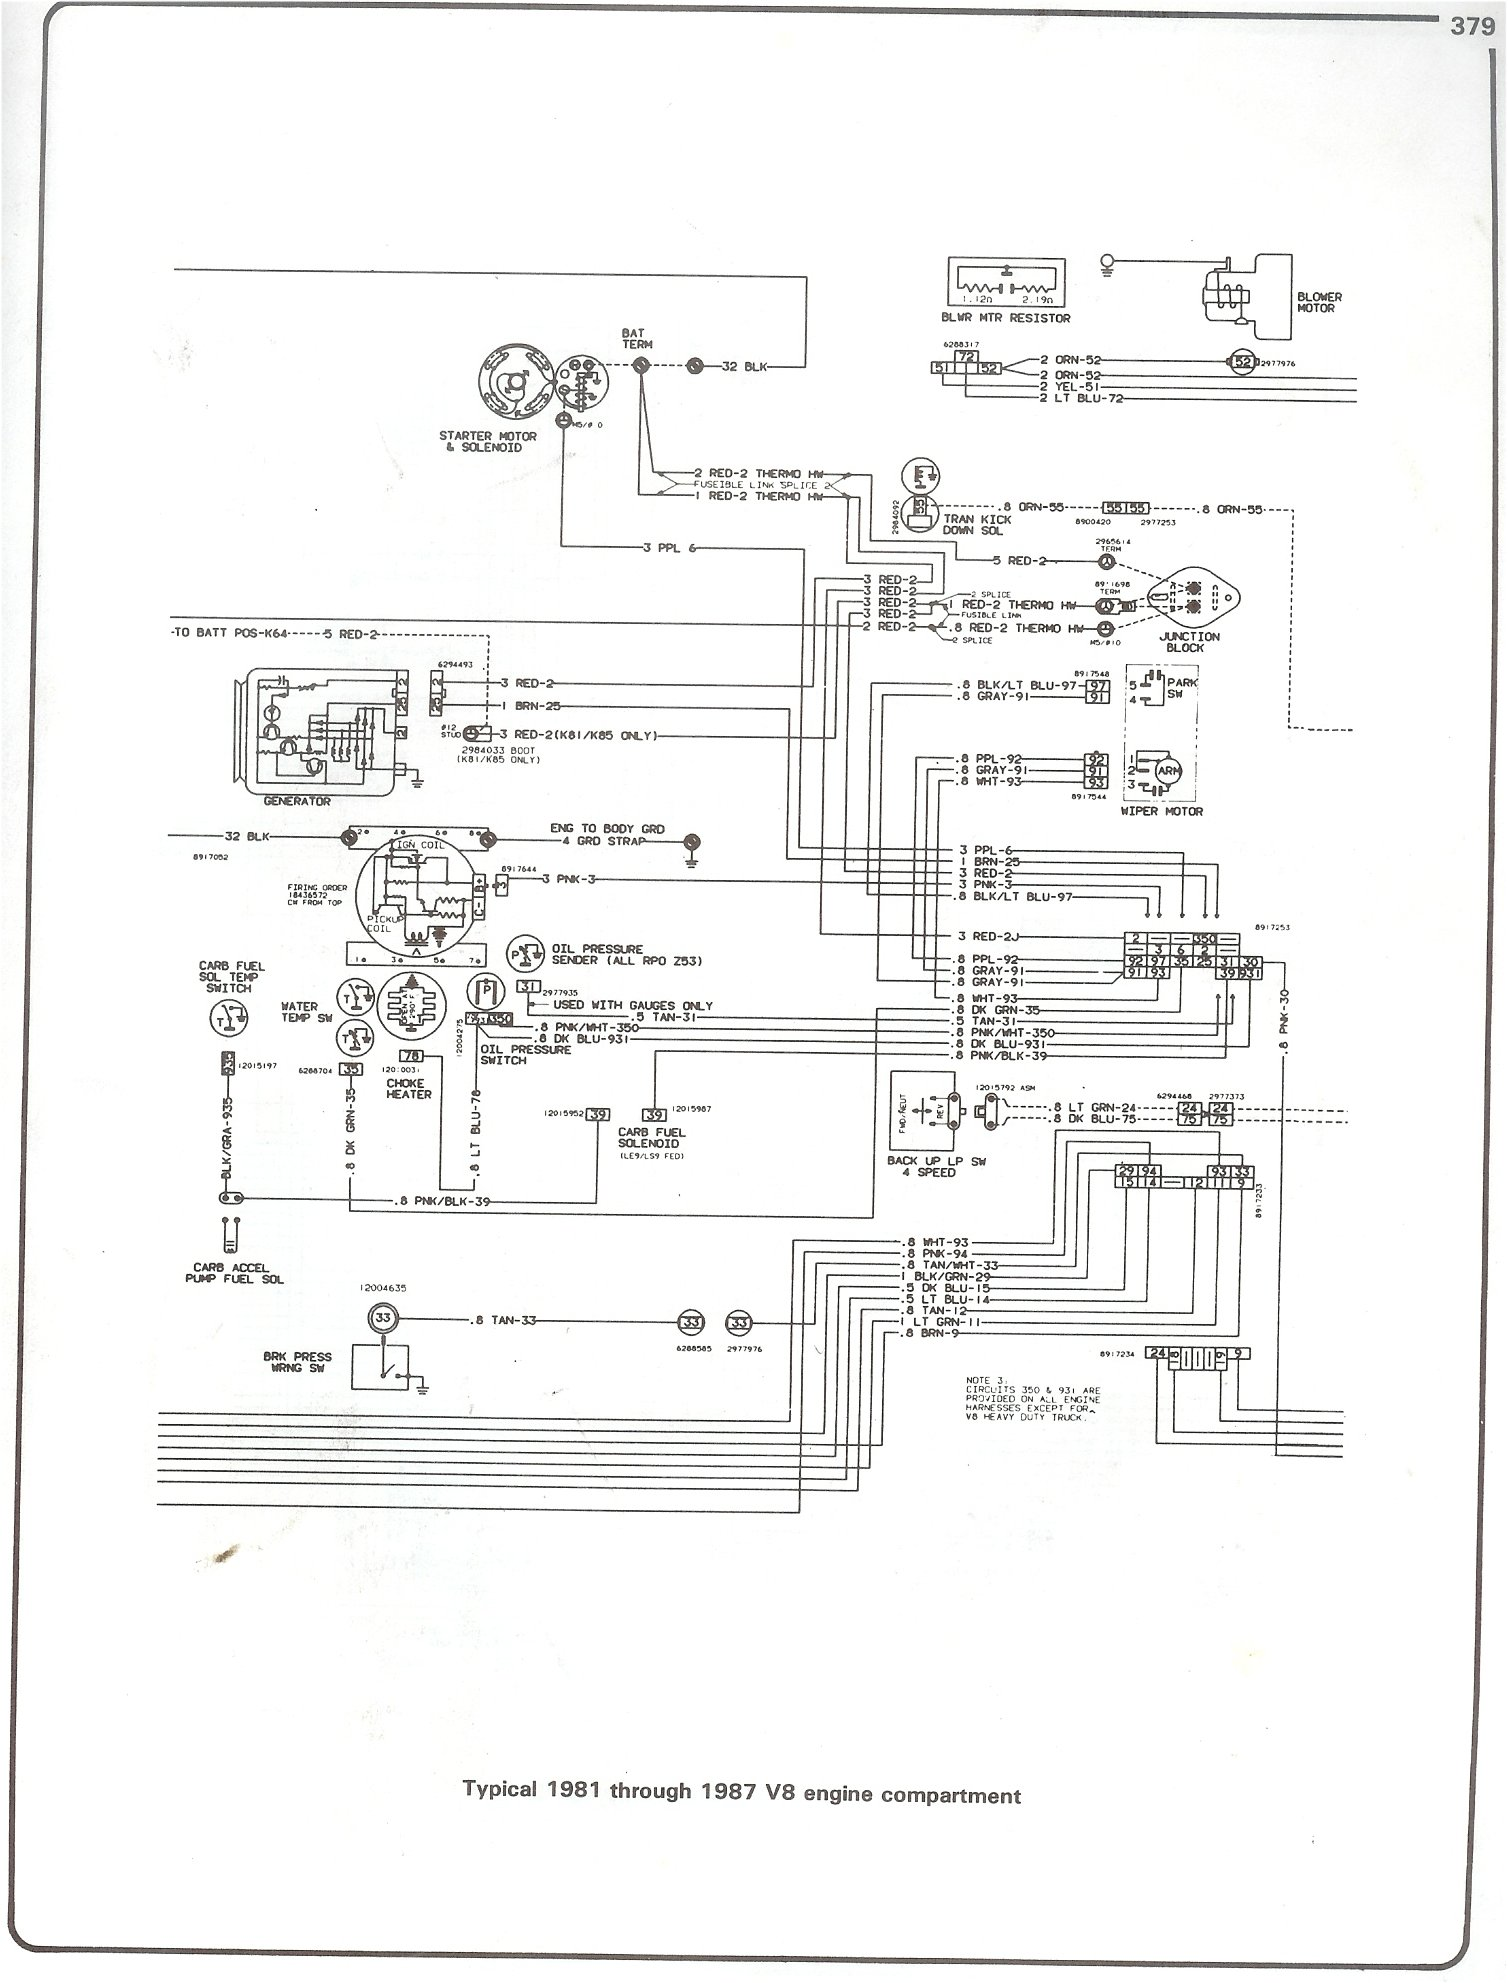 81 87_V8_engine complete 73 87 wiring diagrams 1988 GMC Sierra 1500 at mifinder.co